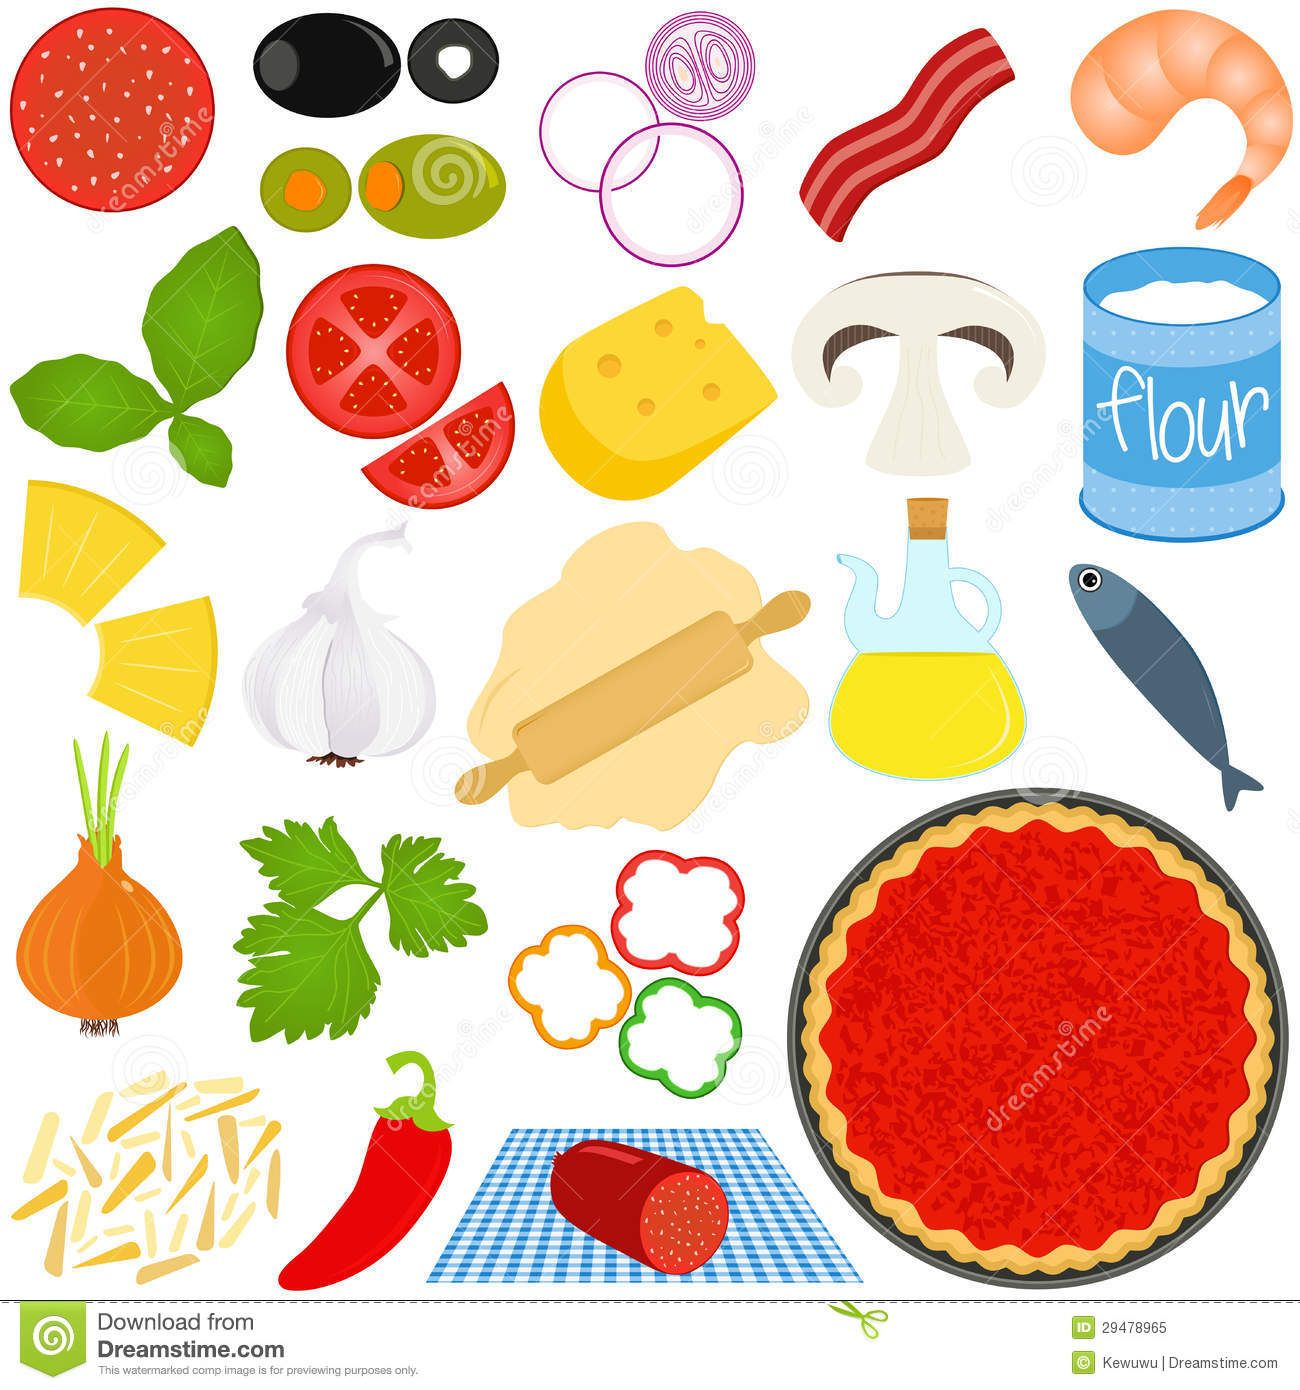 Pizza Toppings Clipart Ingredients To Make Pizza.